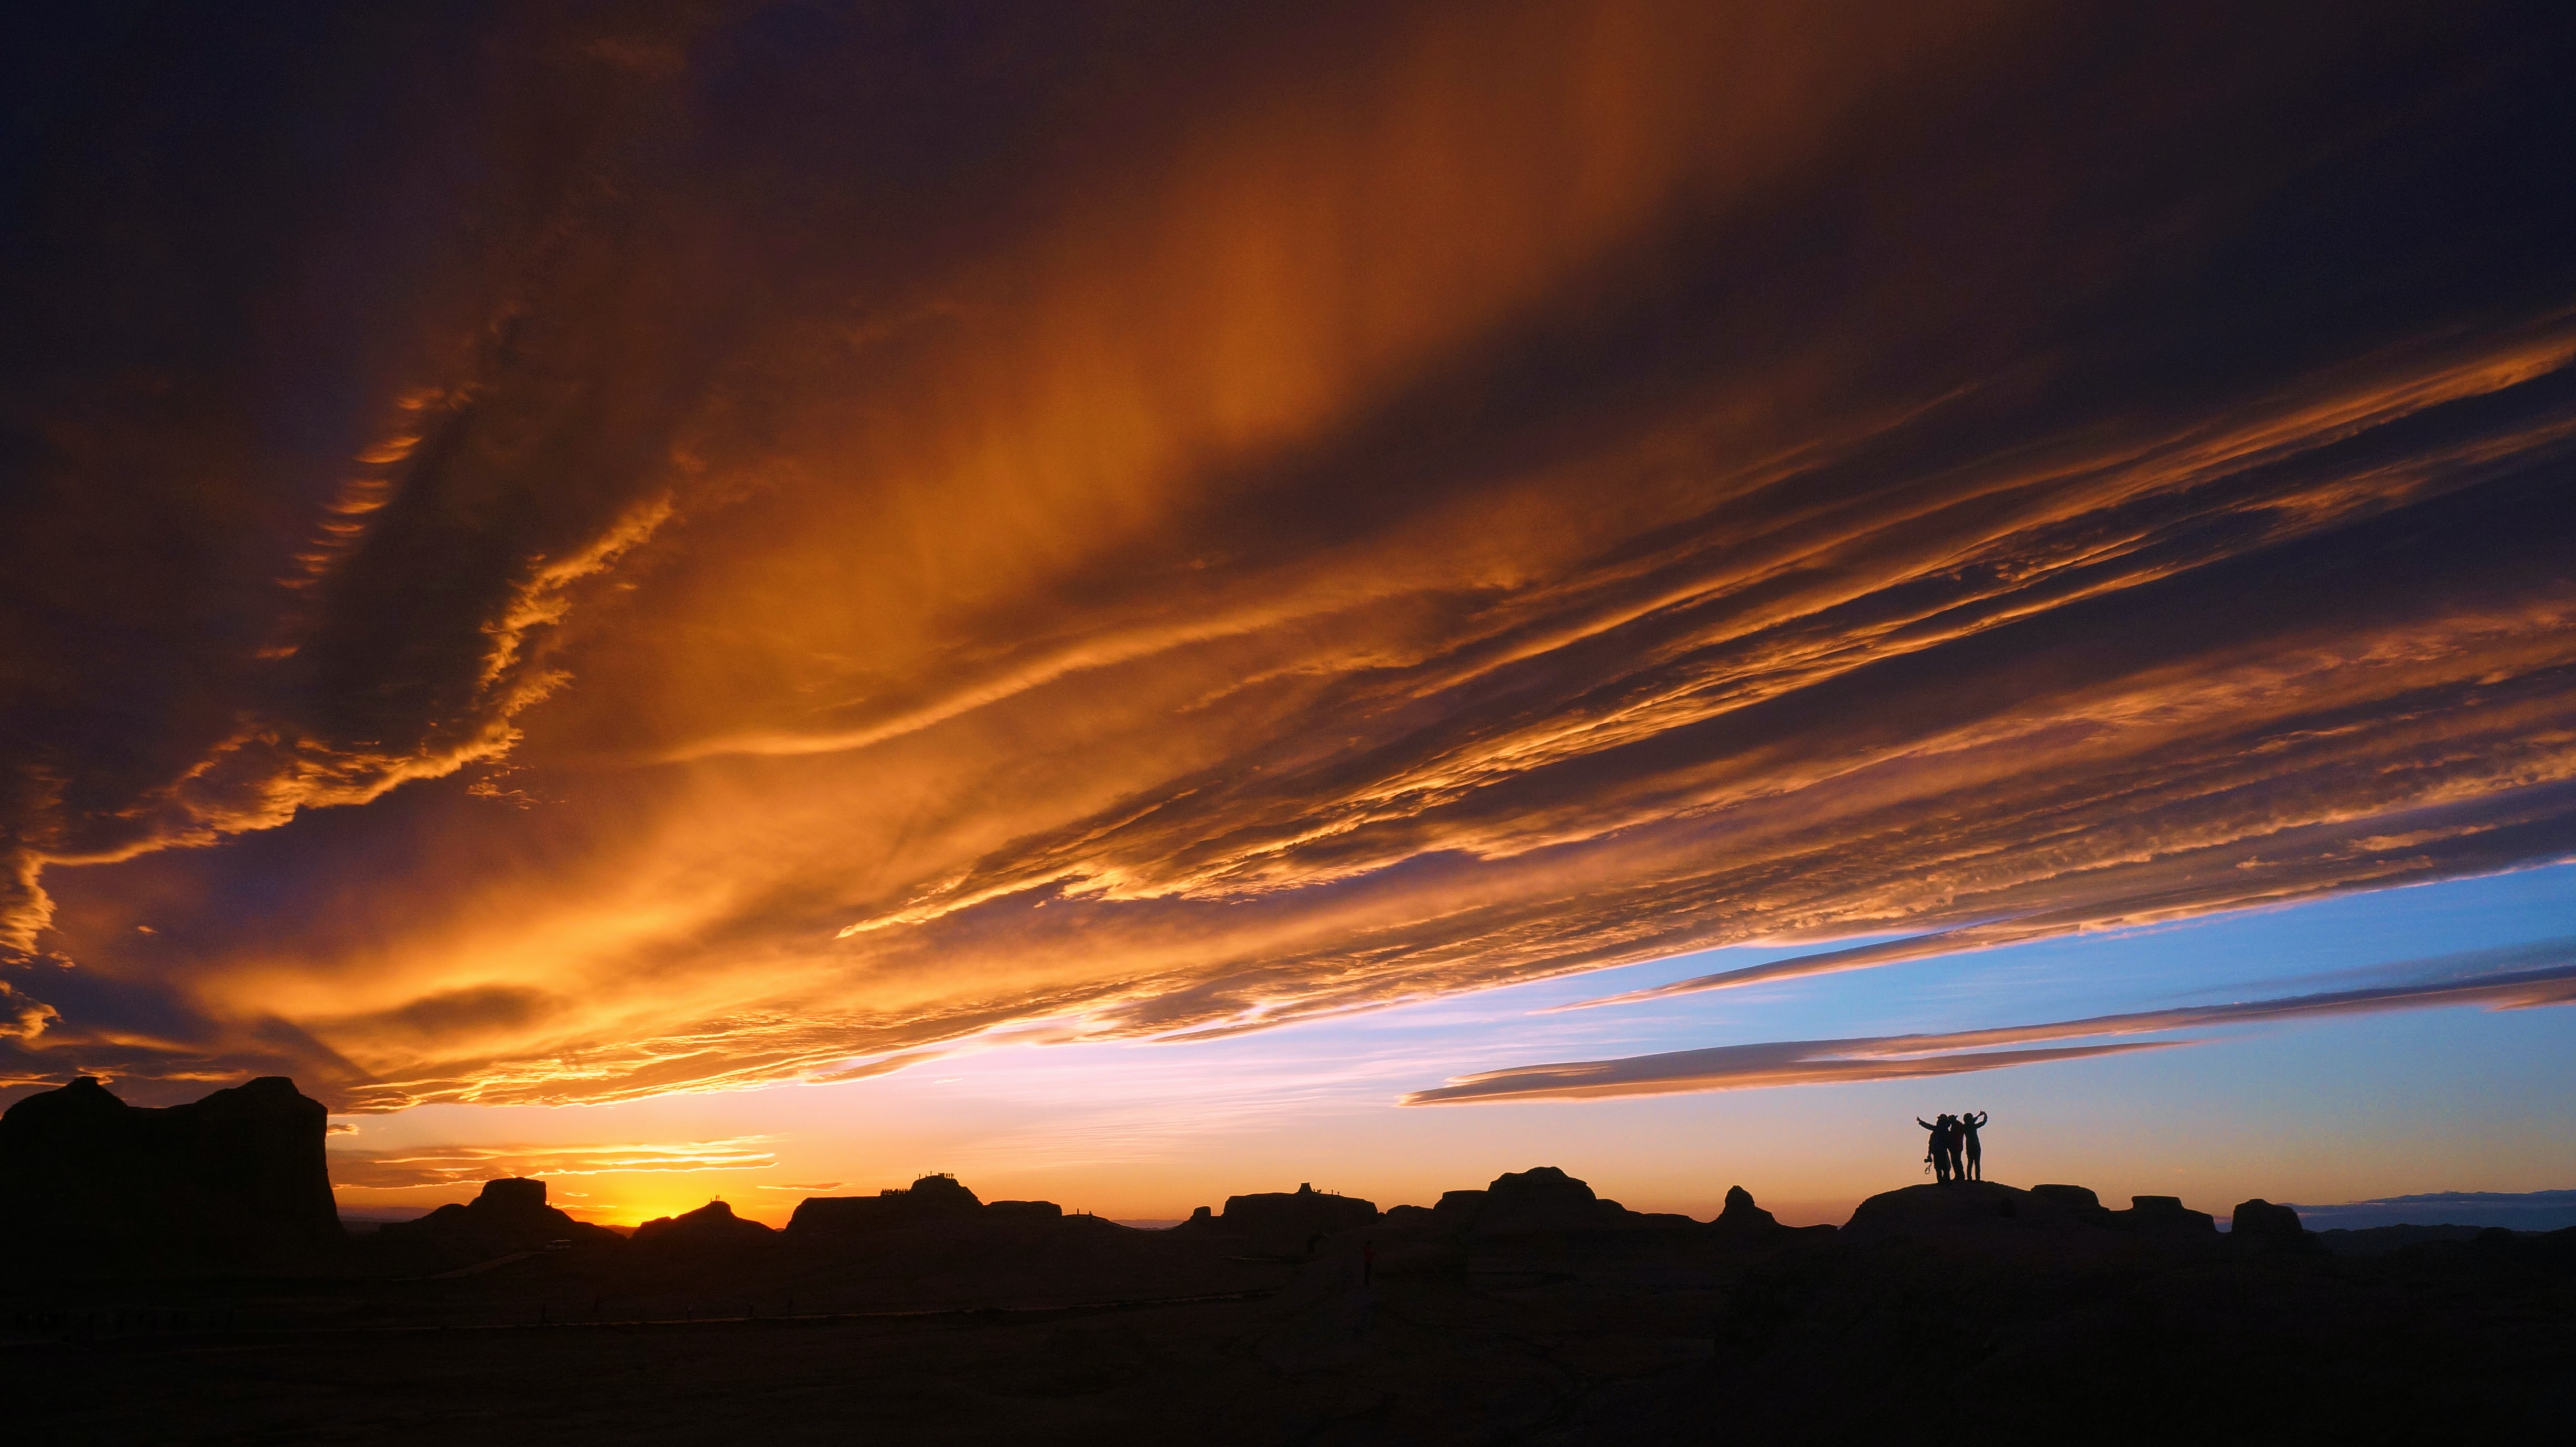 A silhouetted group of friends standing on top of rock formations, with a cloudy sunset overhead in Xinjiang